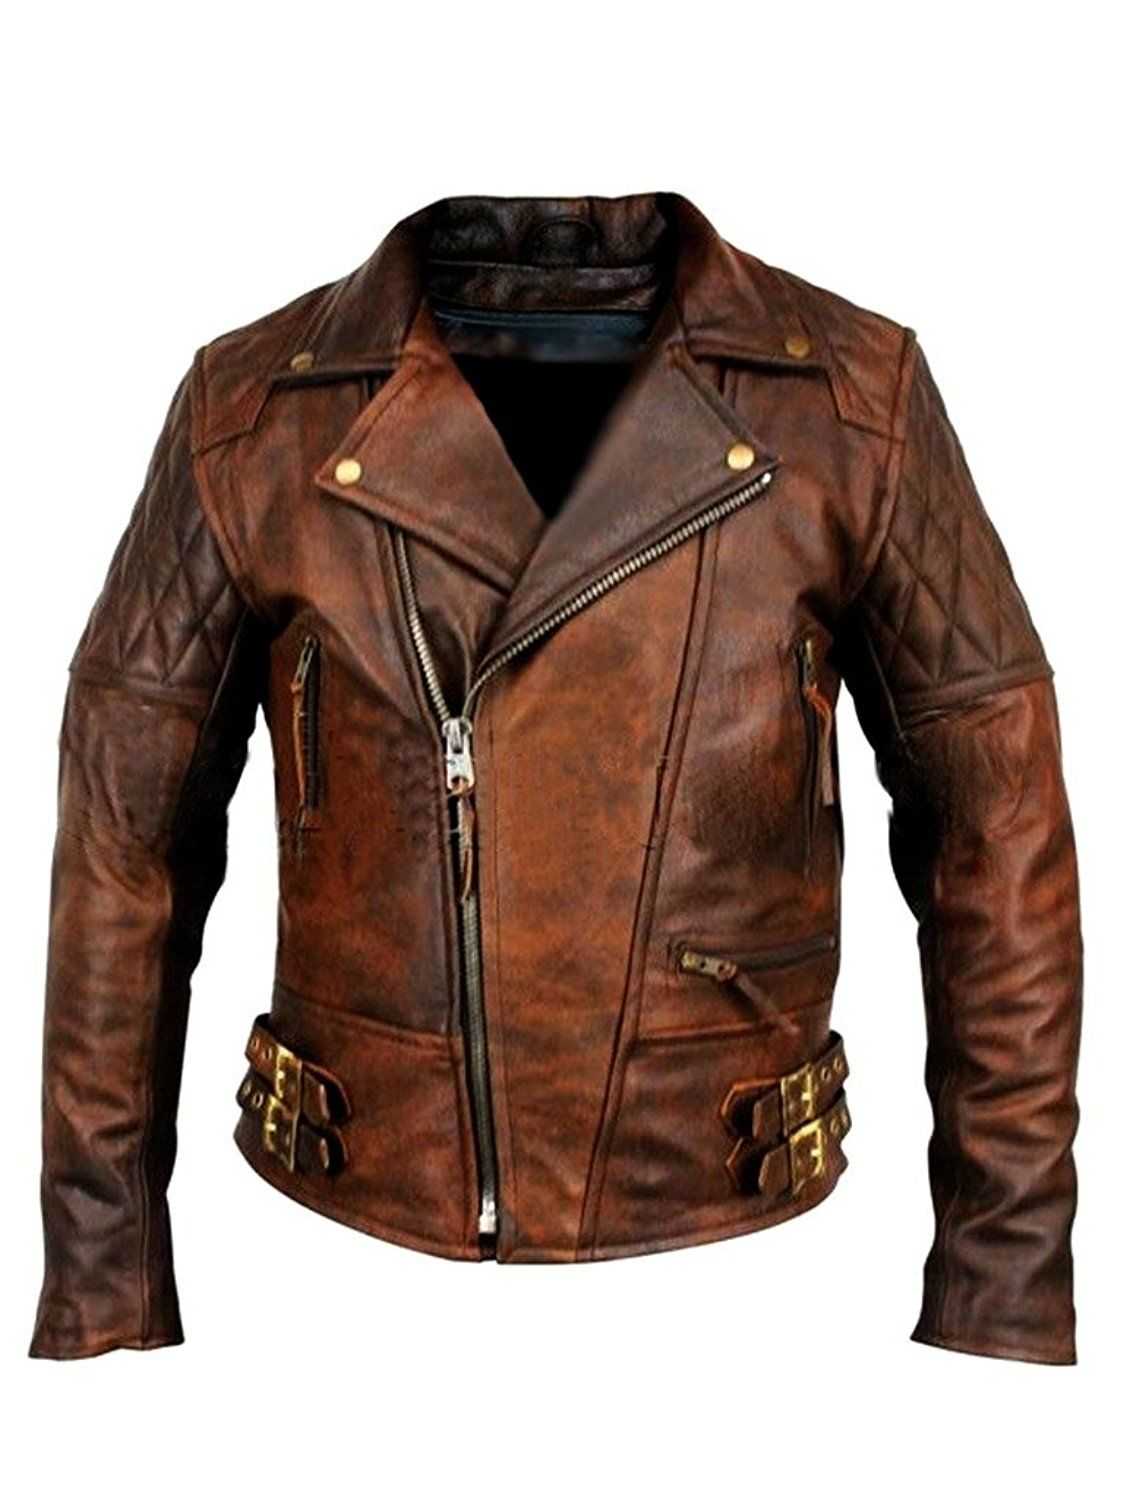 Mens Biker Vintage Motorcycle Cafe Racer Brown Distressed